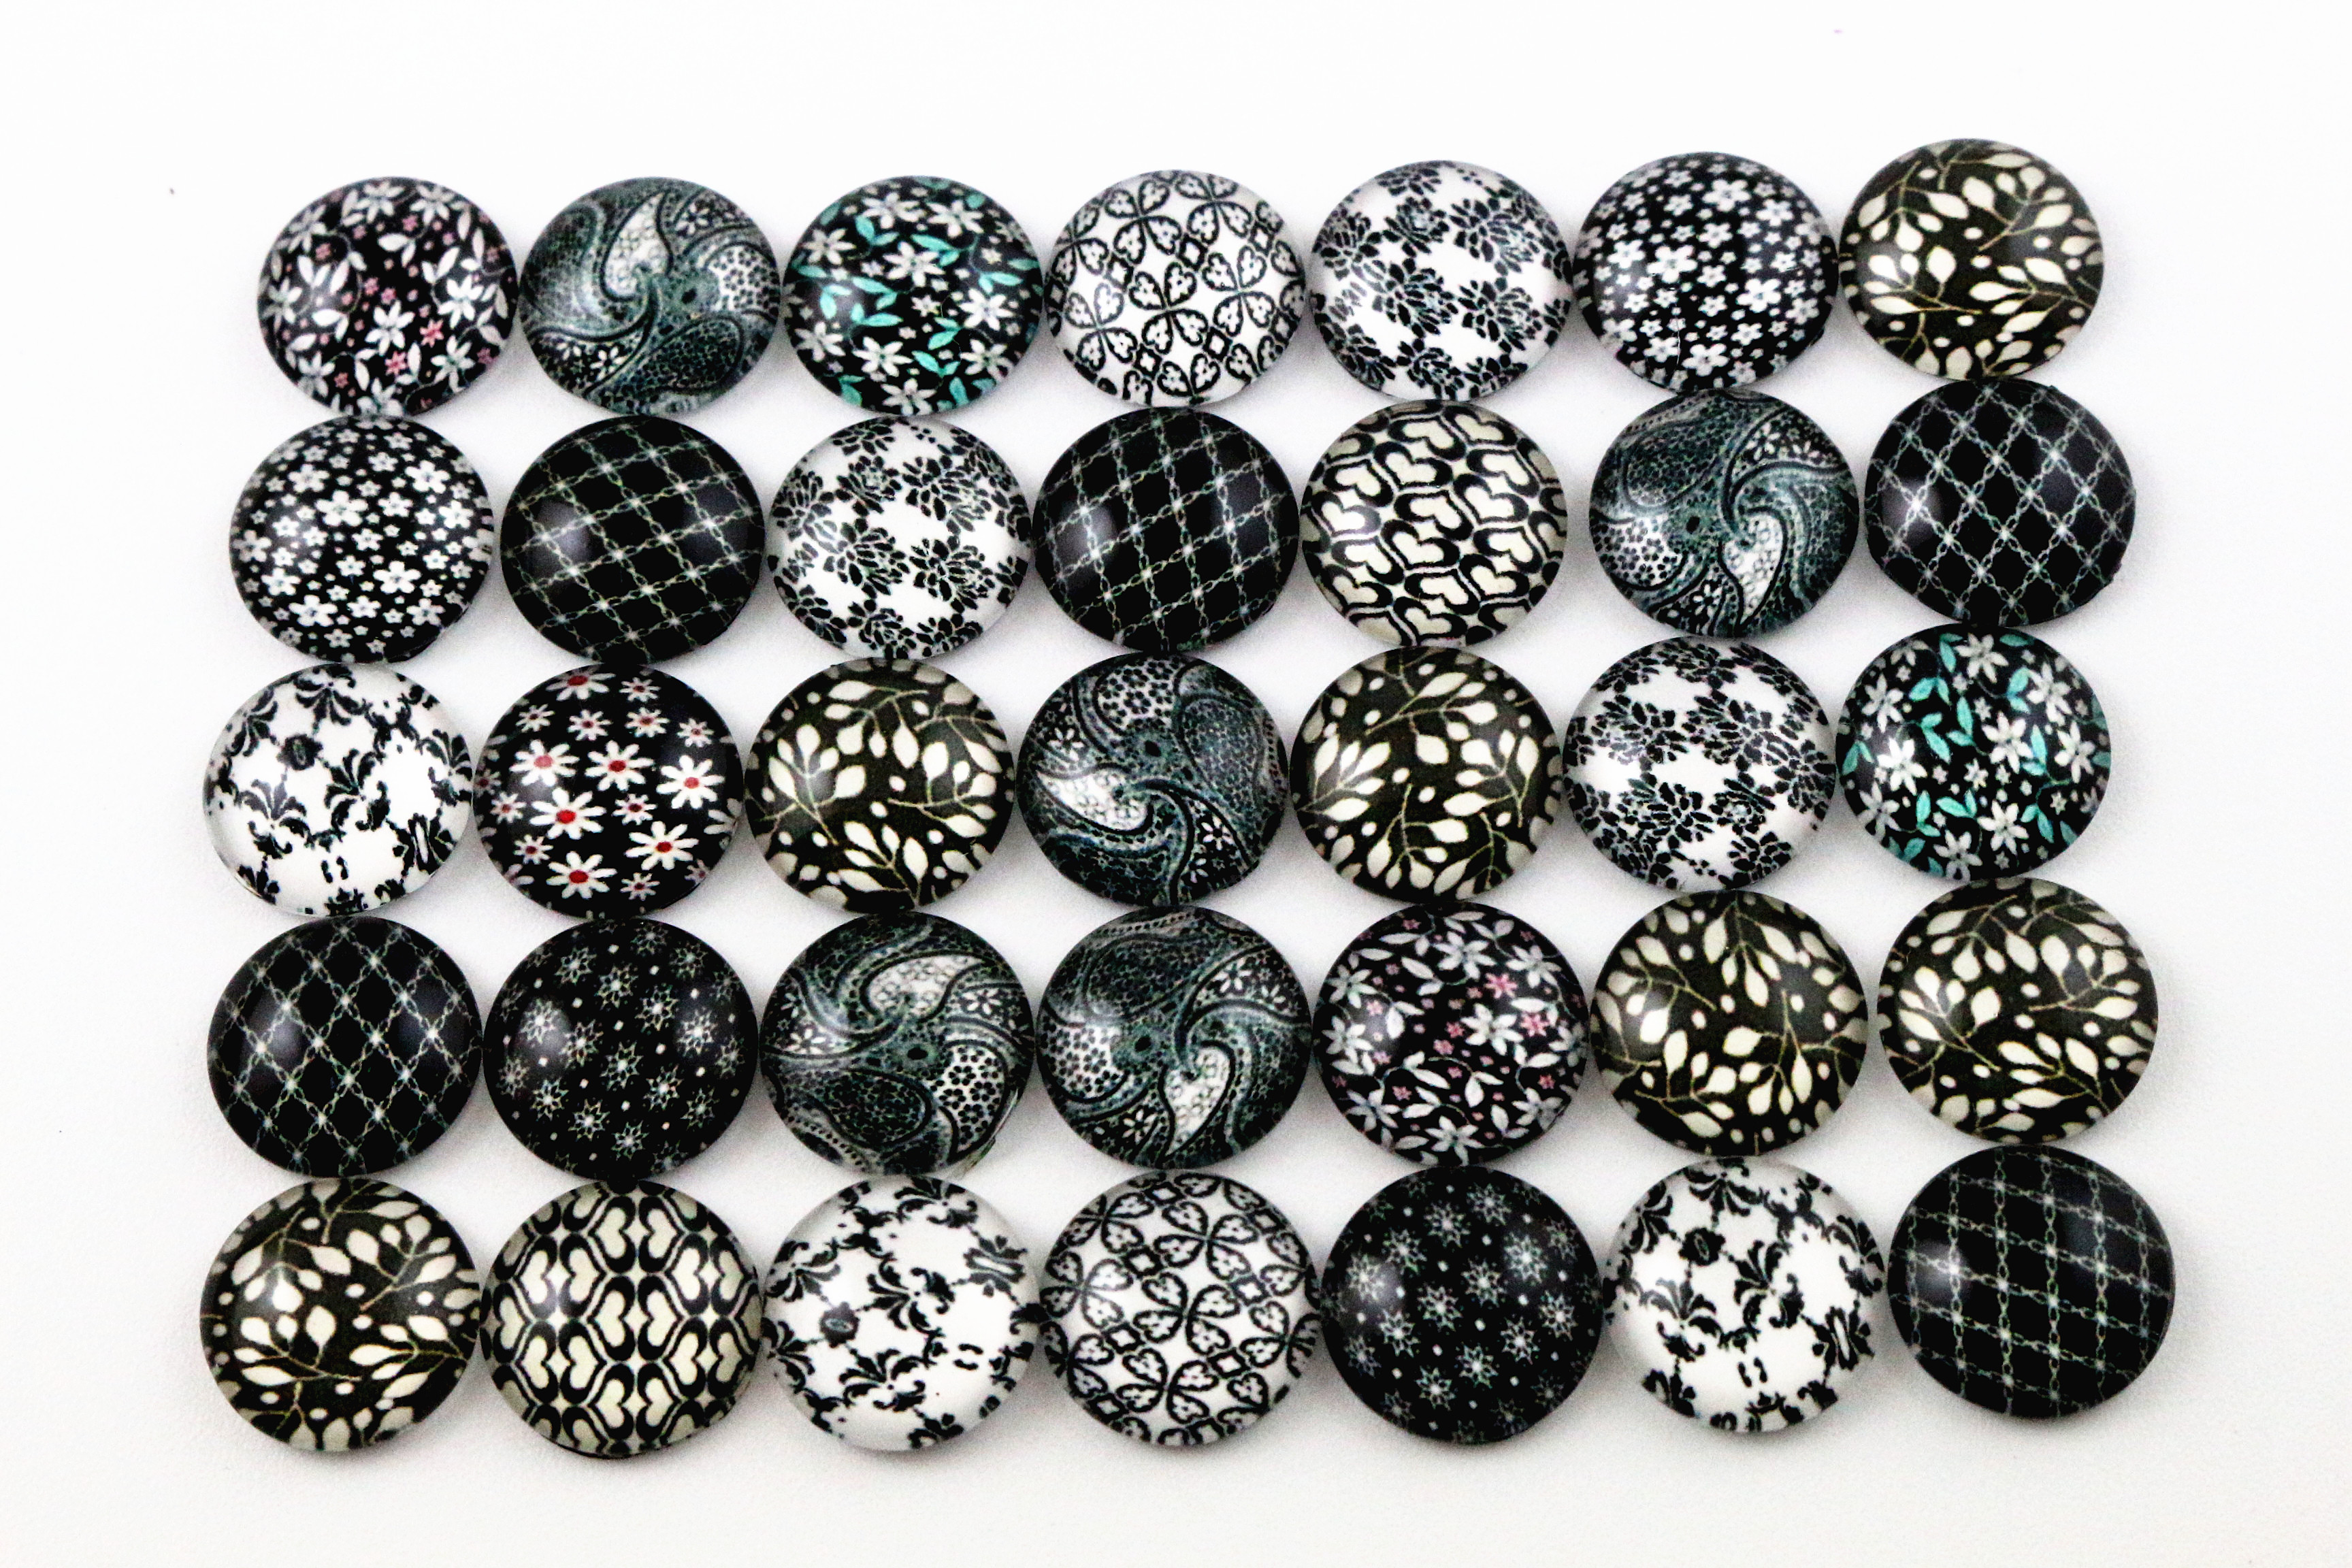 50pcs/Lot 12mm Photo Glass Cabochons Mixed Handmade Cabochons For Handmade Bracelet earrings necklace Bases Settings(G2-06)50pcs/Lot 12mm Photo Glass Cabochons Mixed Handmade Cabochons For Handmade Bracelet earrings necklace Bases Settings(G2-06)